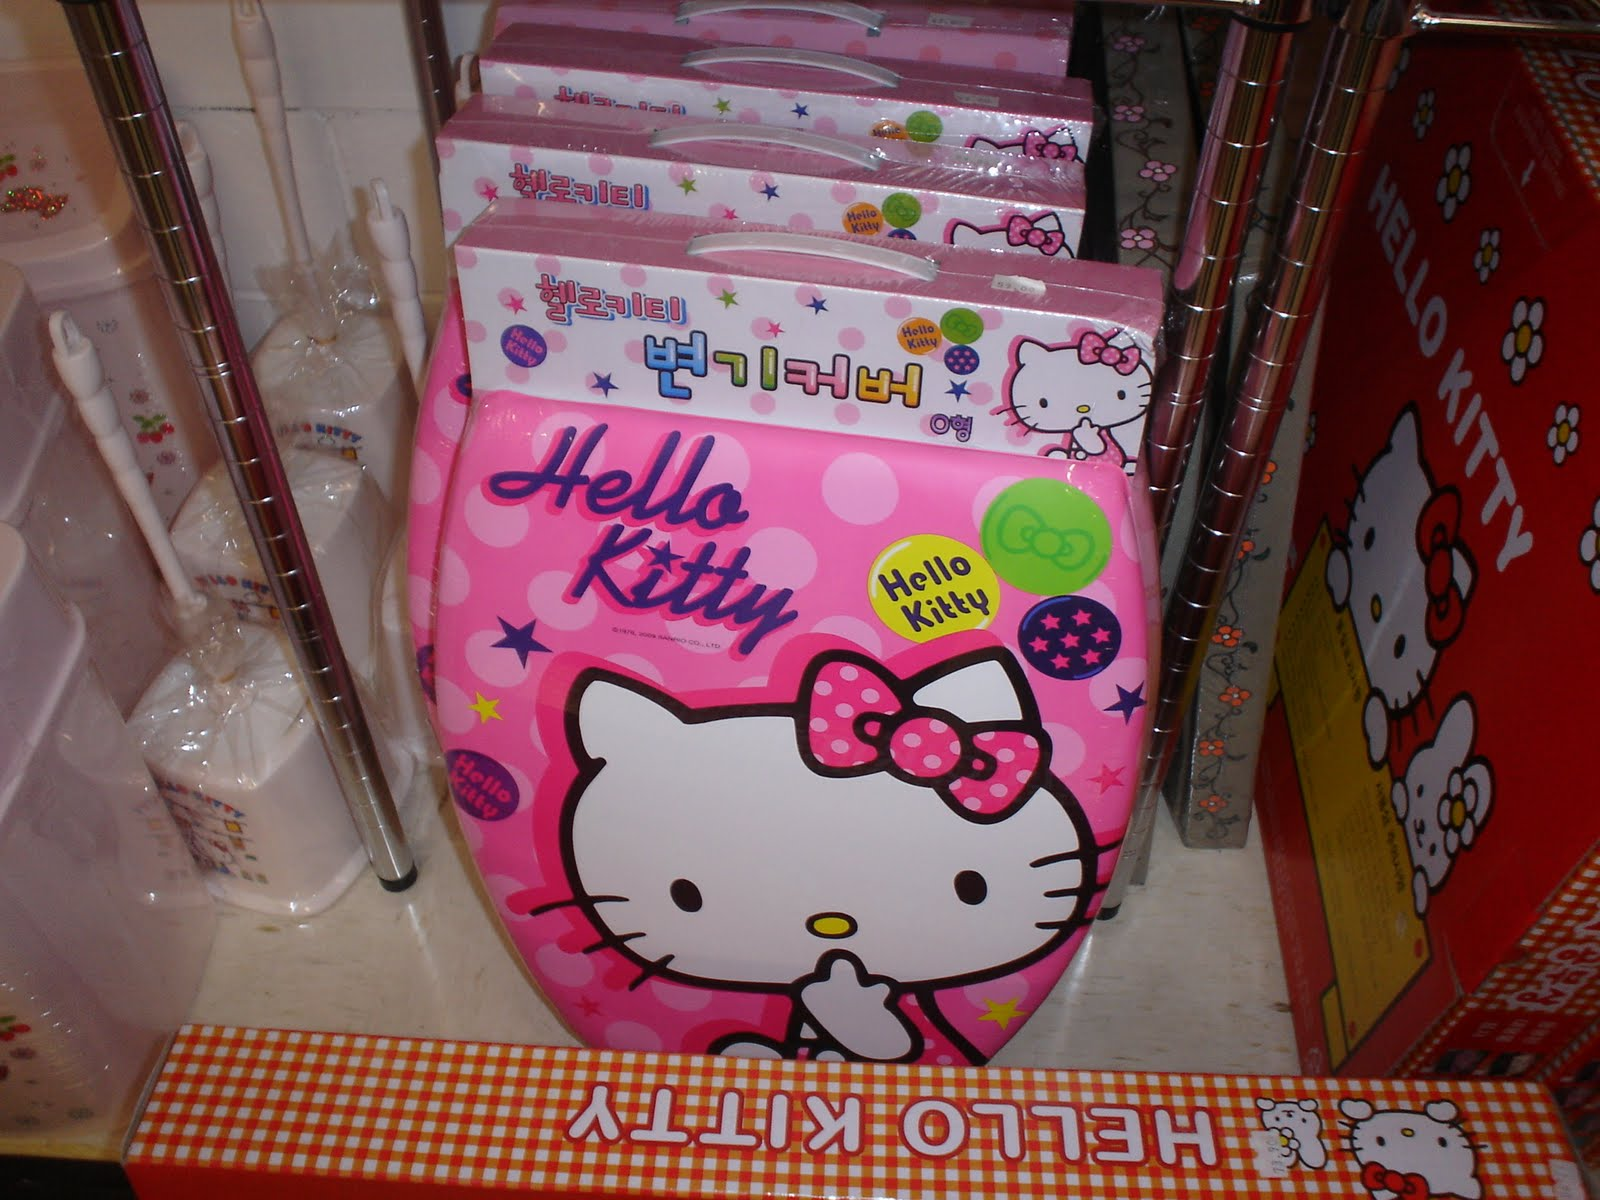 Hello Kitty Potty Chair Slipcovers For Chairs Cute Toys Rule Melbourne Finds